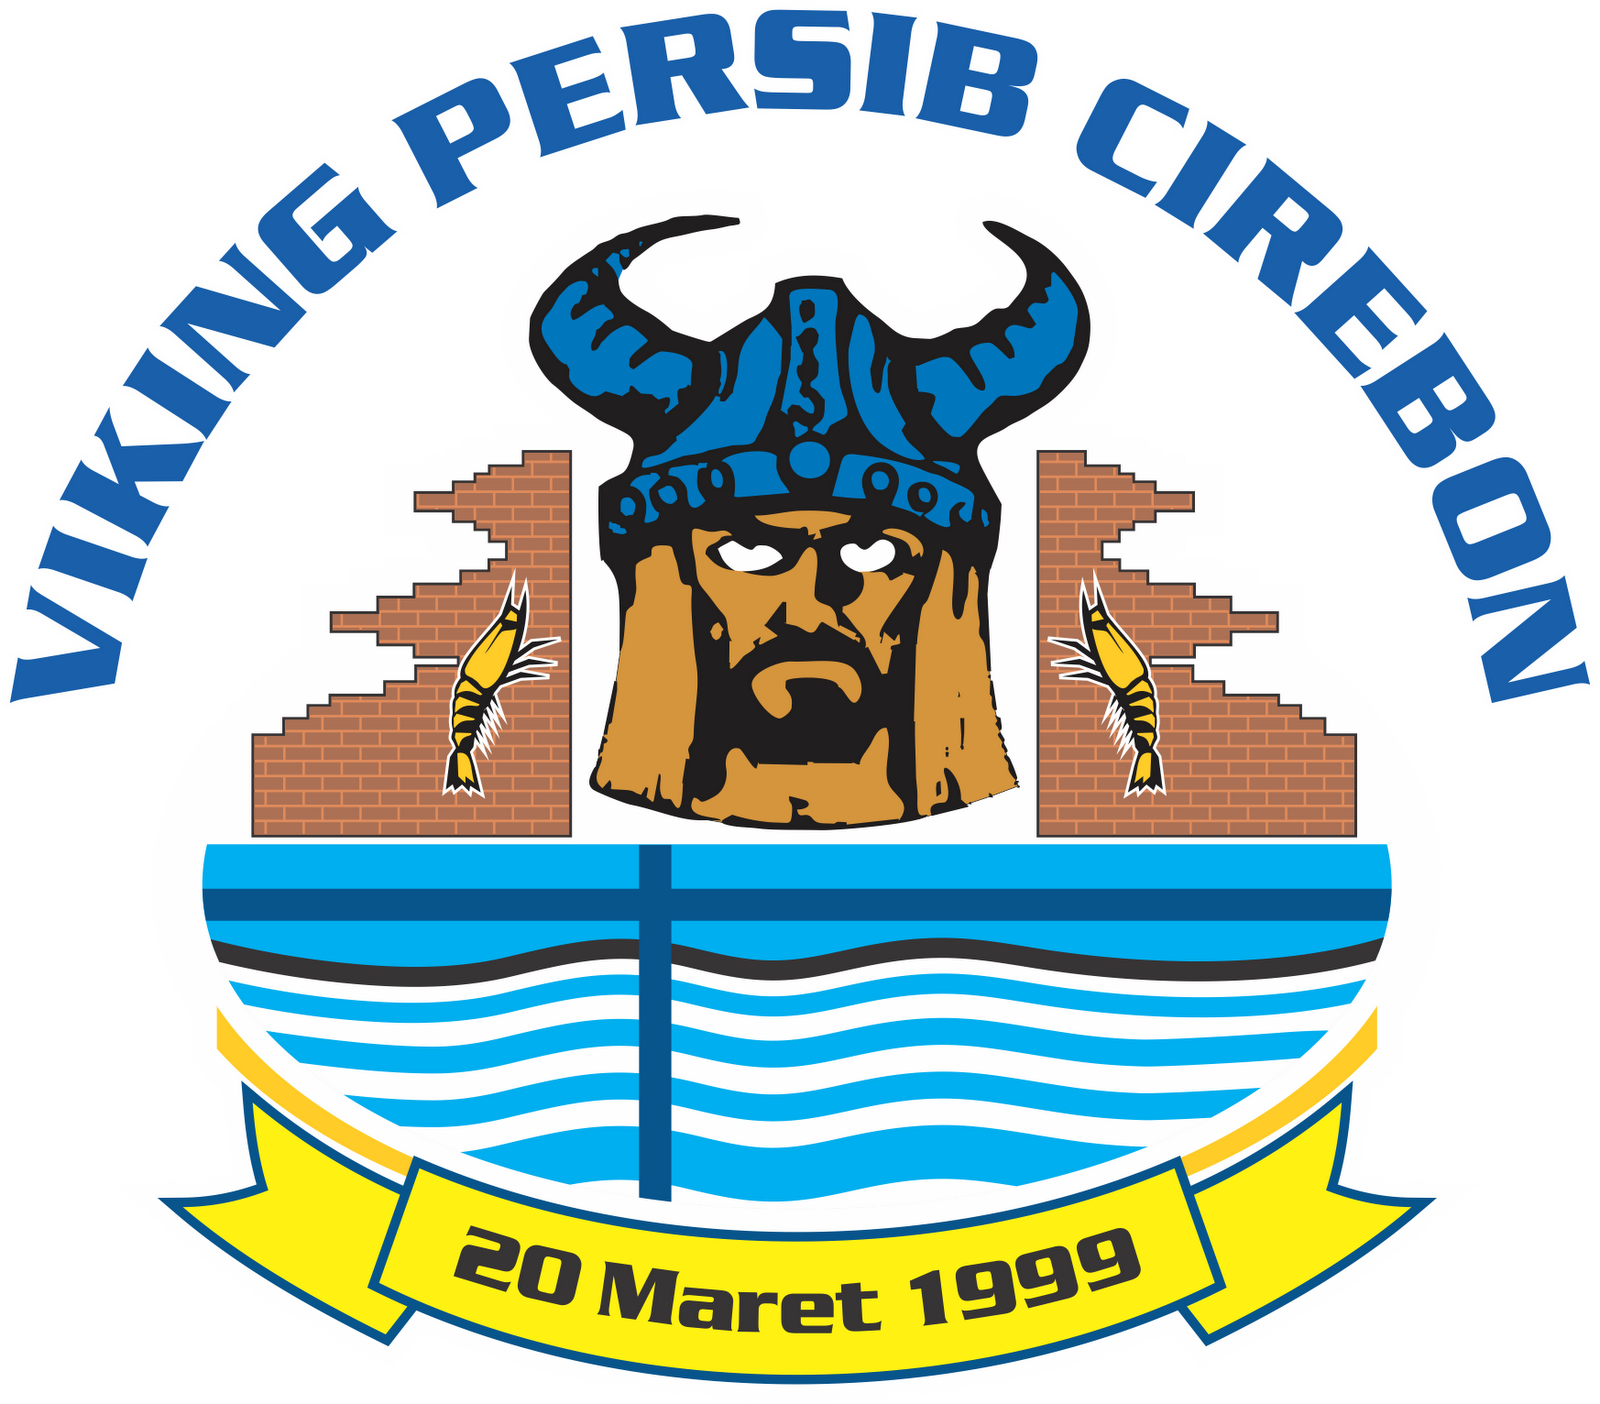 viking is the name of persib bandung soccer association supp